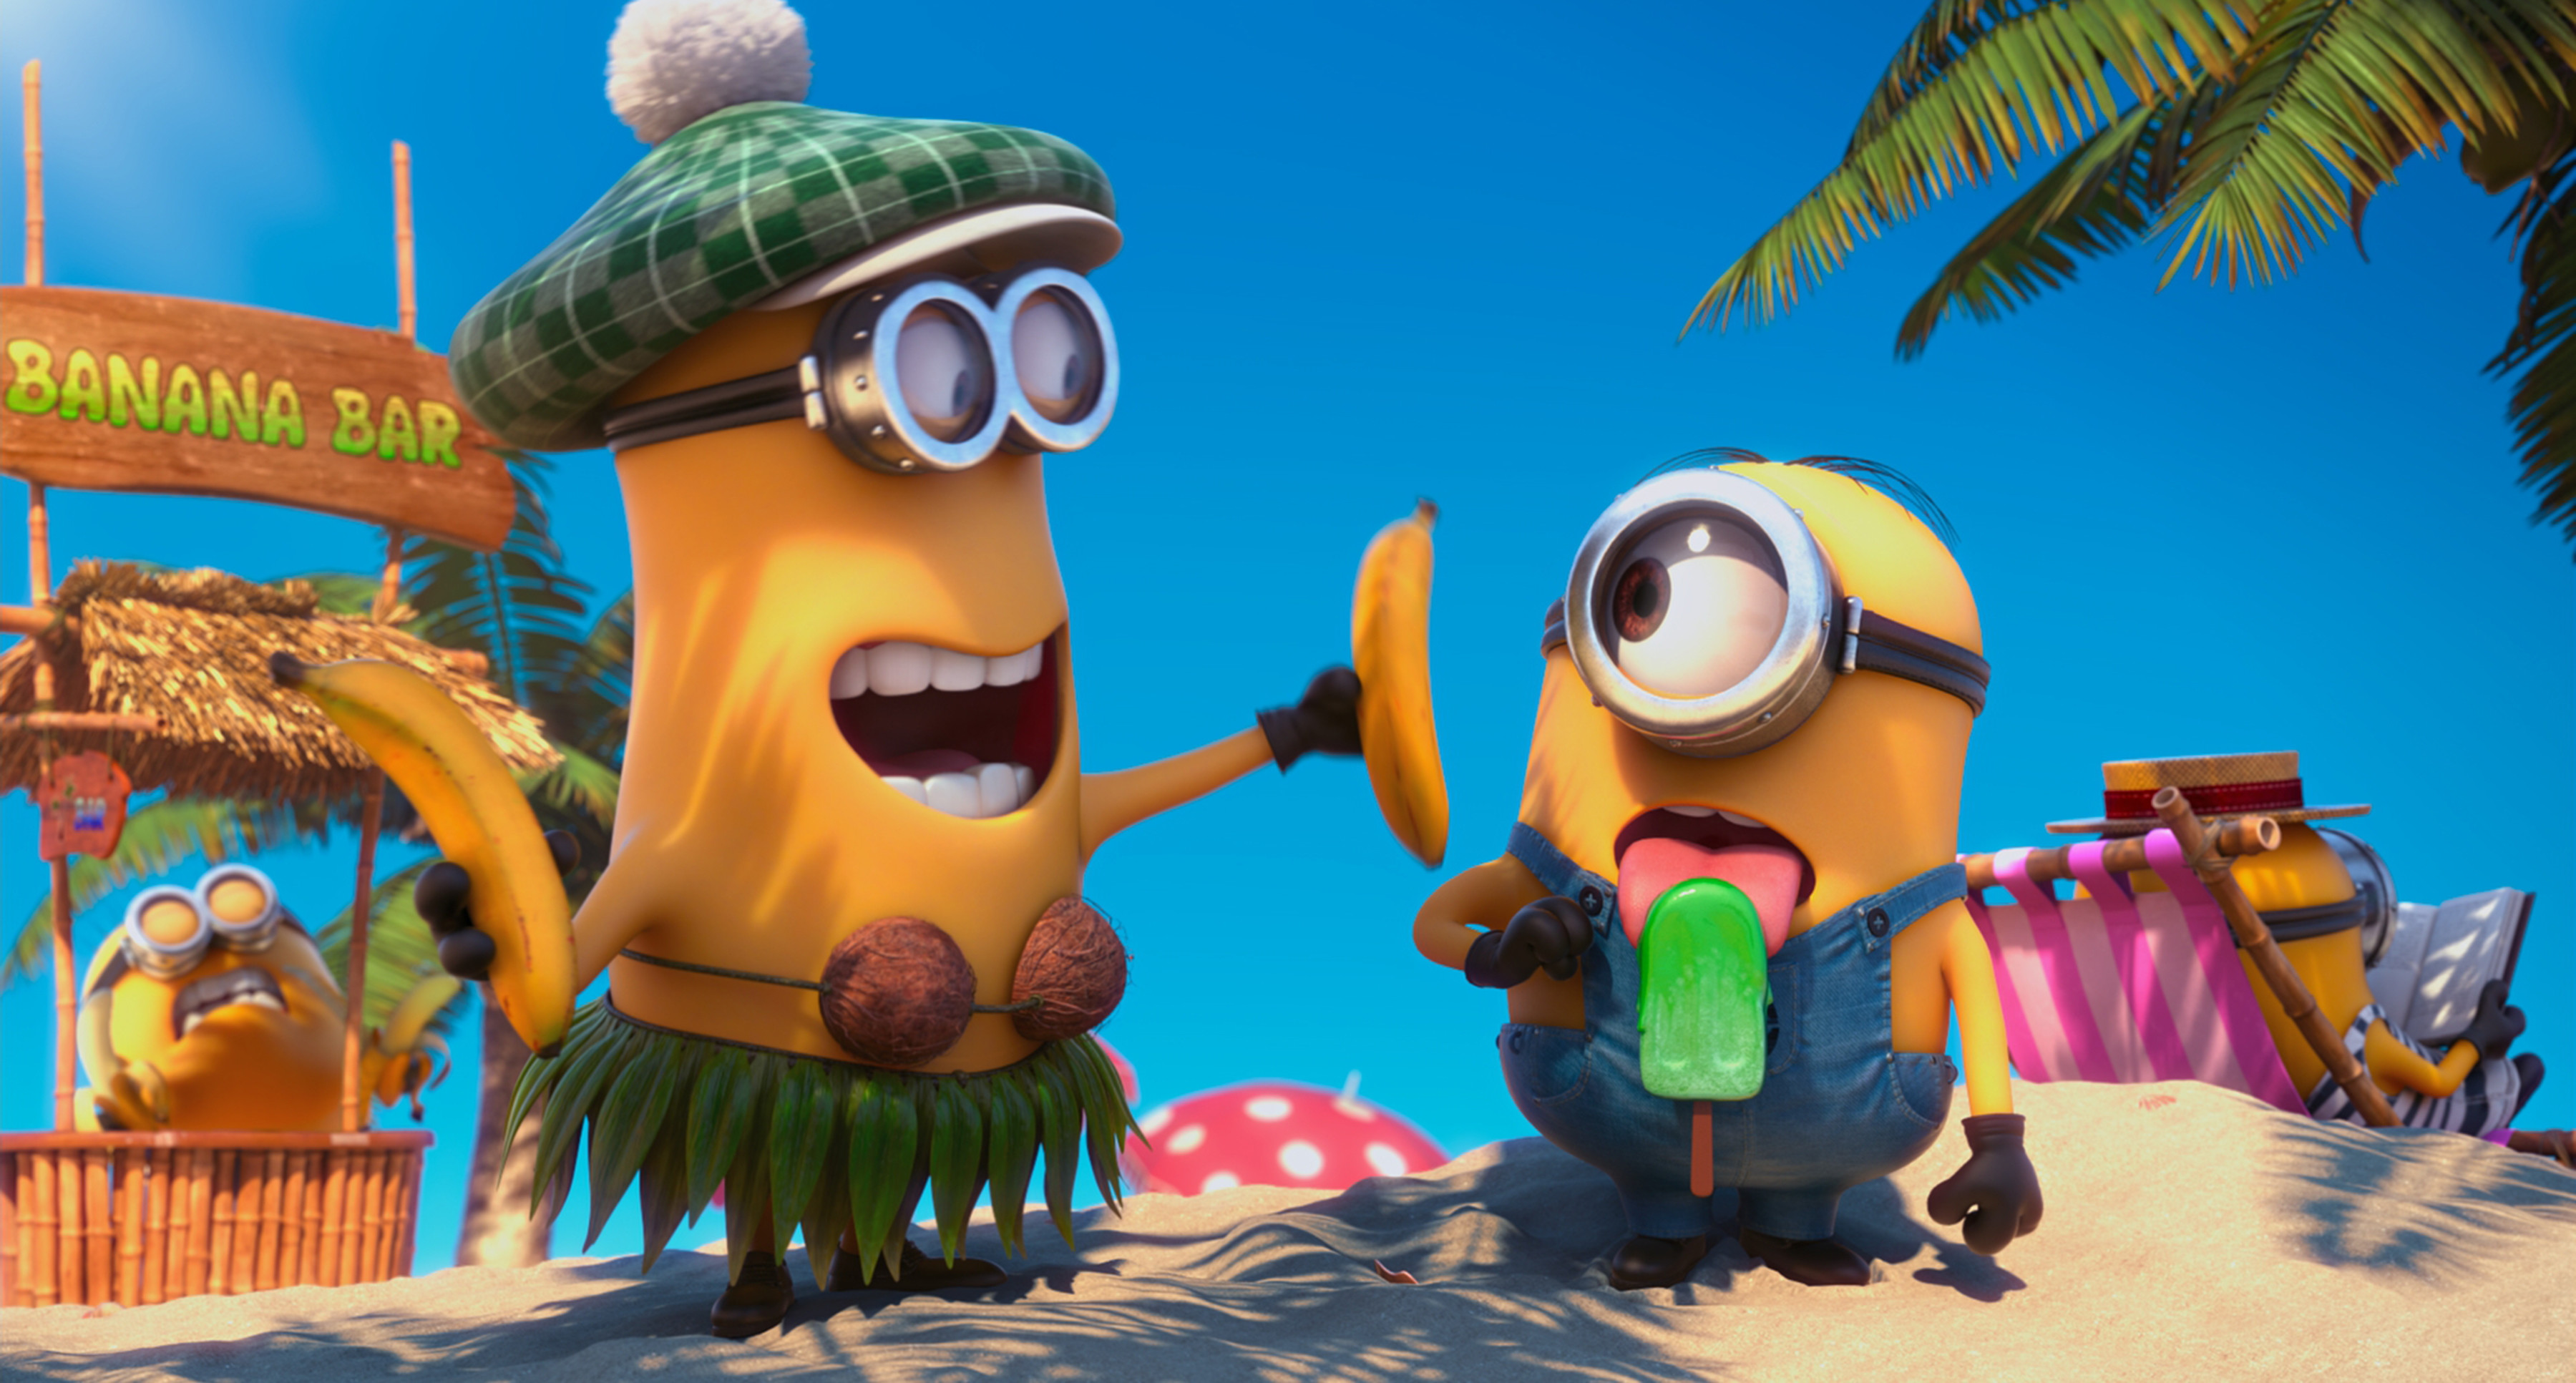 Res: 3600x1933, Funny Minions Banana HD Wallpaper image and save image as click save